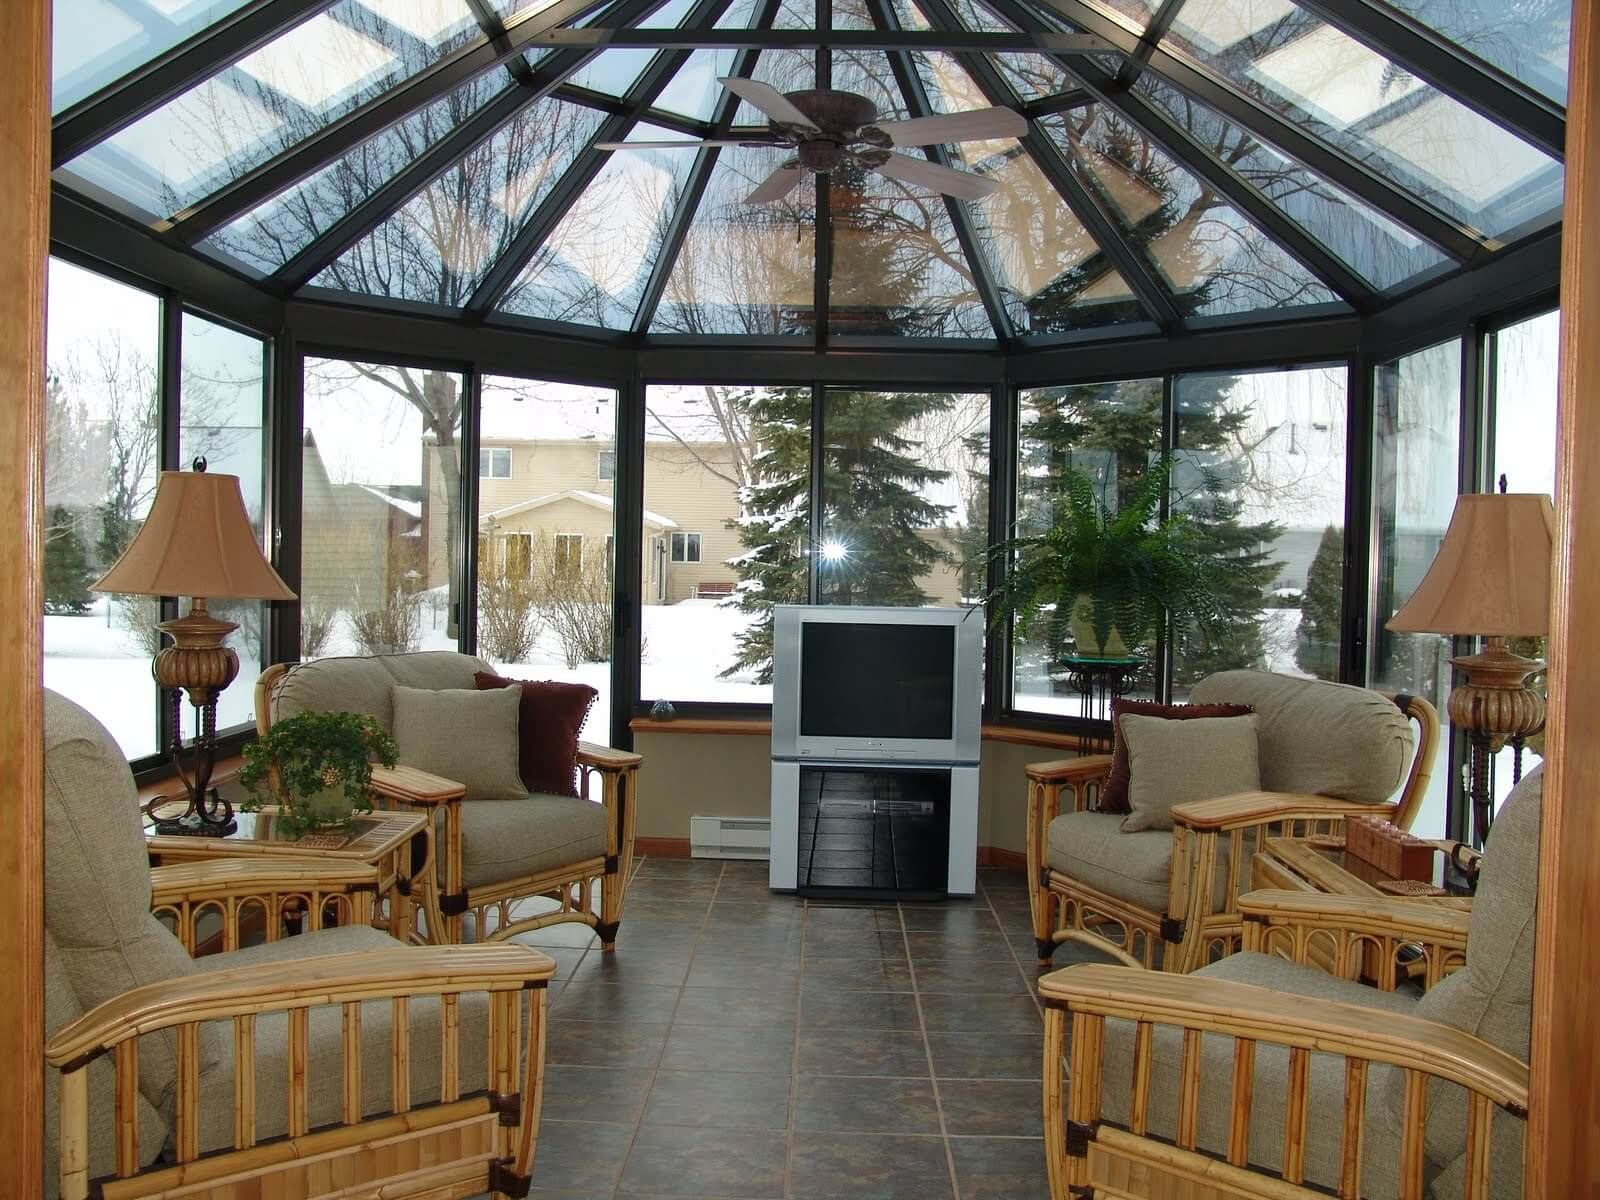 Seasonal Room & Screen Porch Enclosures - Modern Architectural Glazing